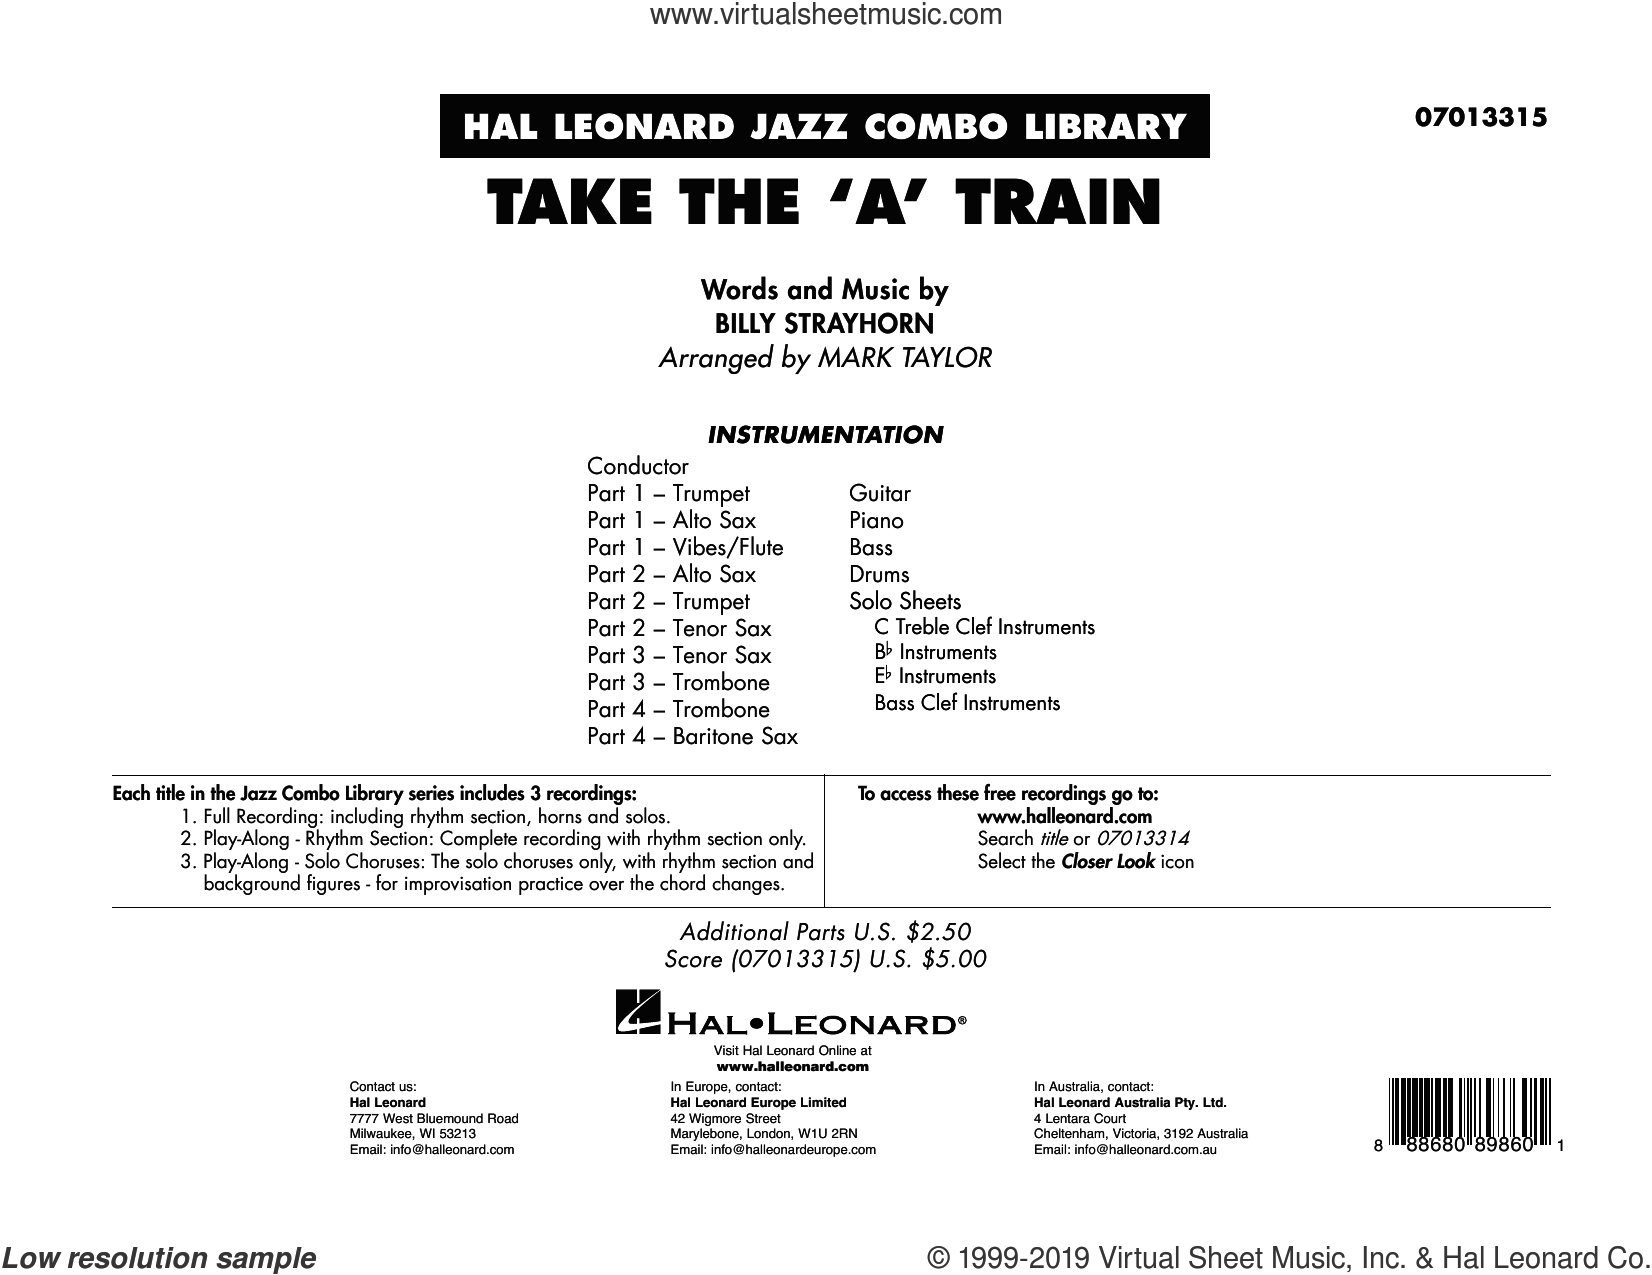 Take The 'A' Train (arr. Mark Taylor) (COMPLETE) sheet music for jazz band by Duke Ellington, Billy Strayhorn and Mark Taylor, intermediate skill level